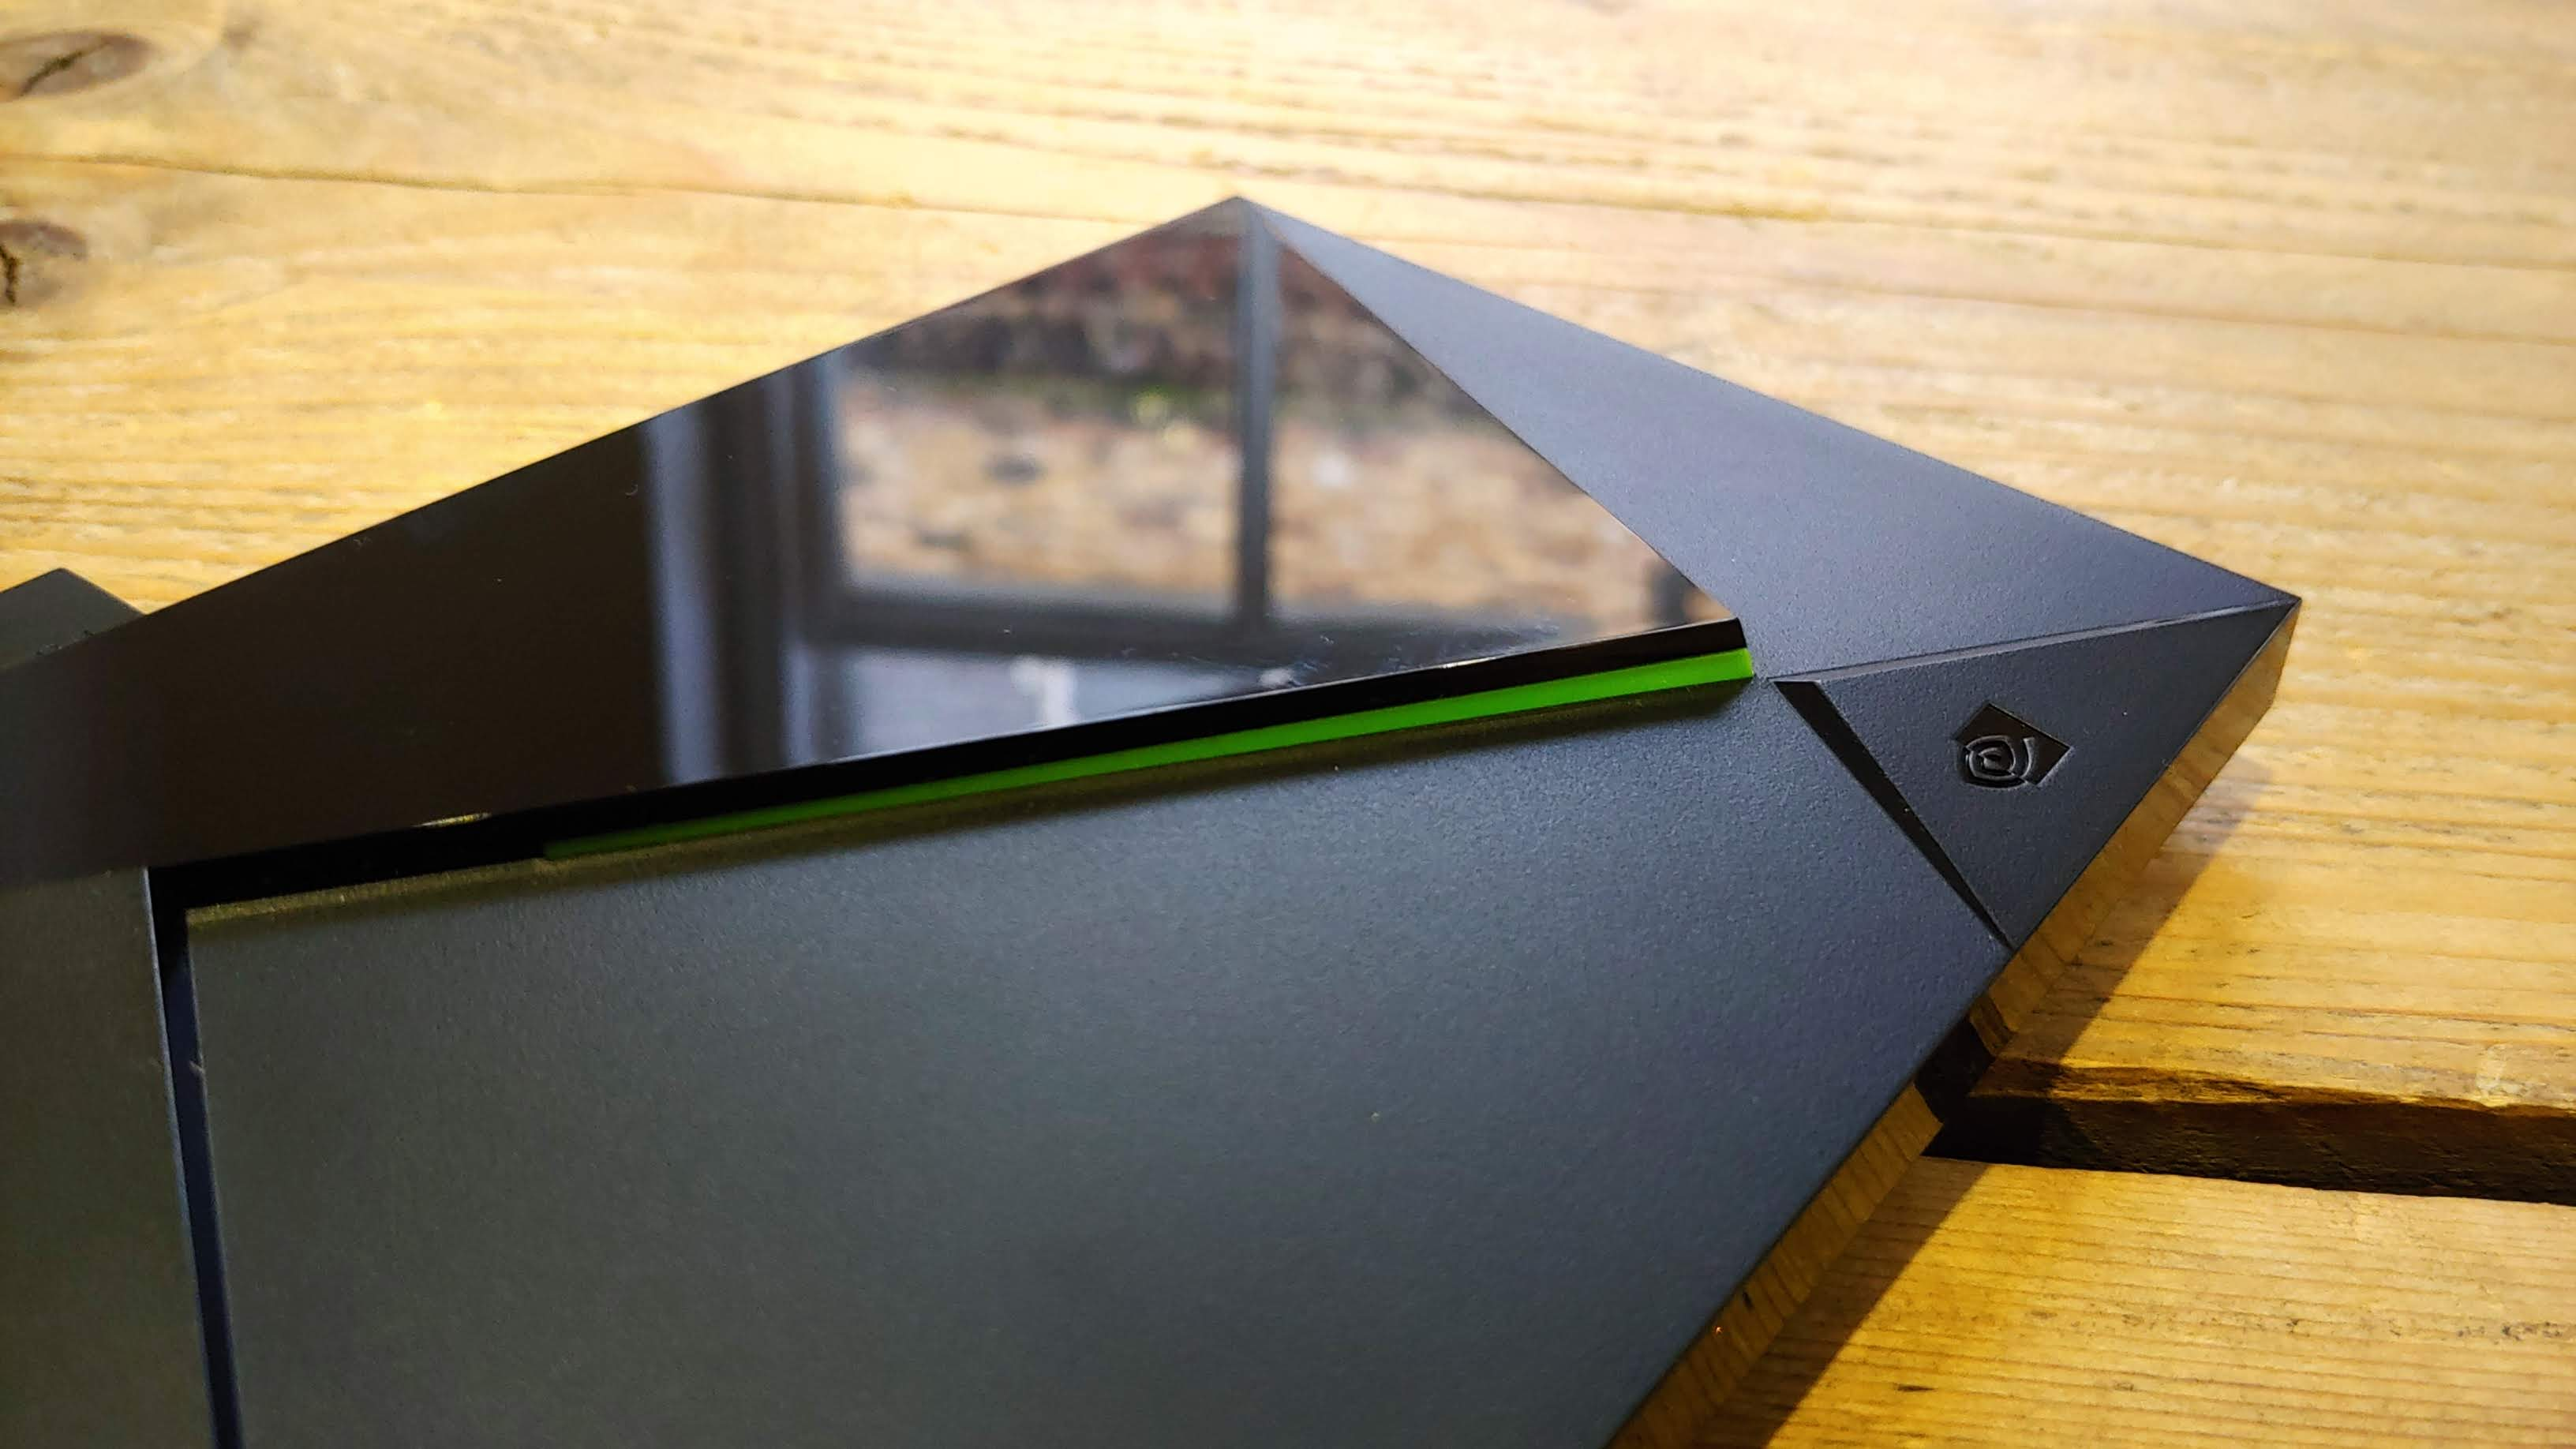 An even closer look at the Nvidia Shield TV Pro